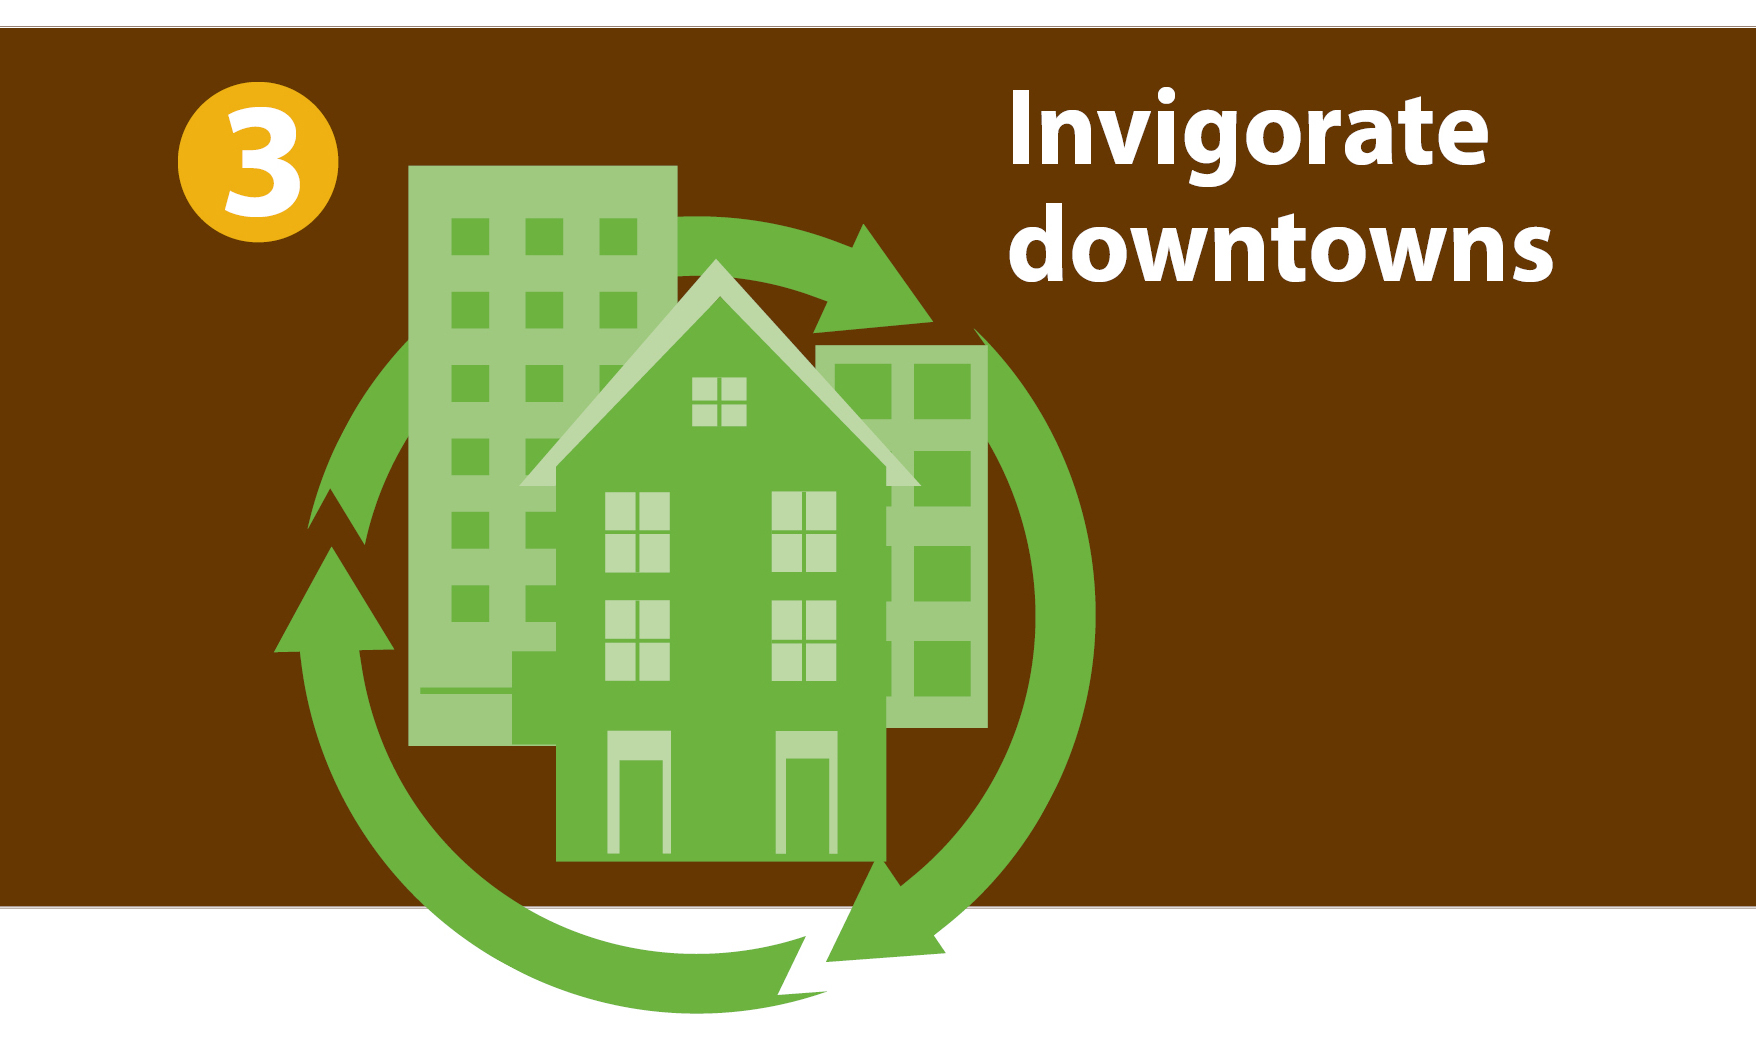 GOAL3_invigDOWNTOWNS_icon